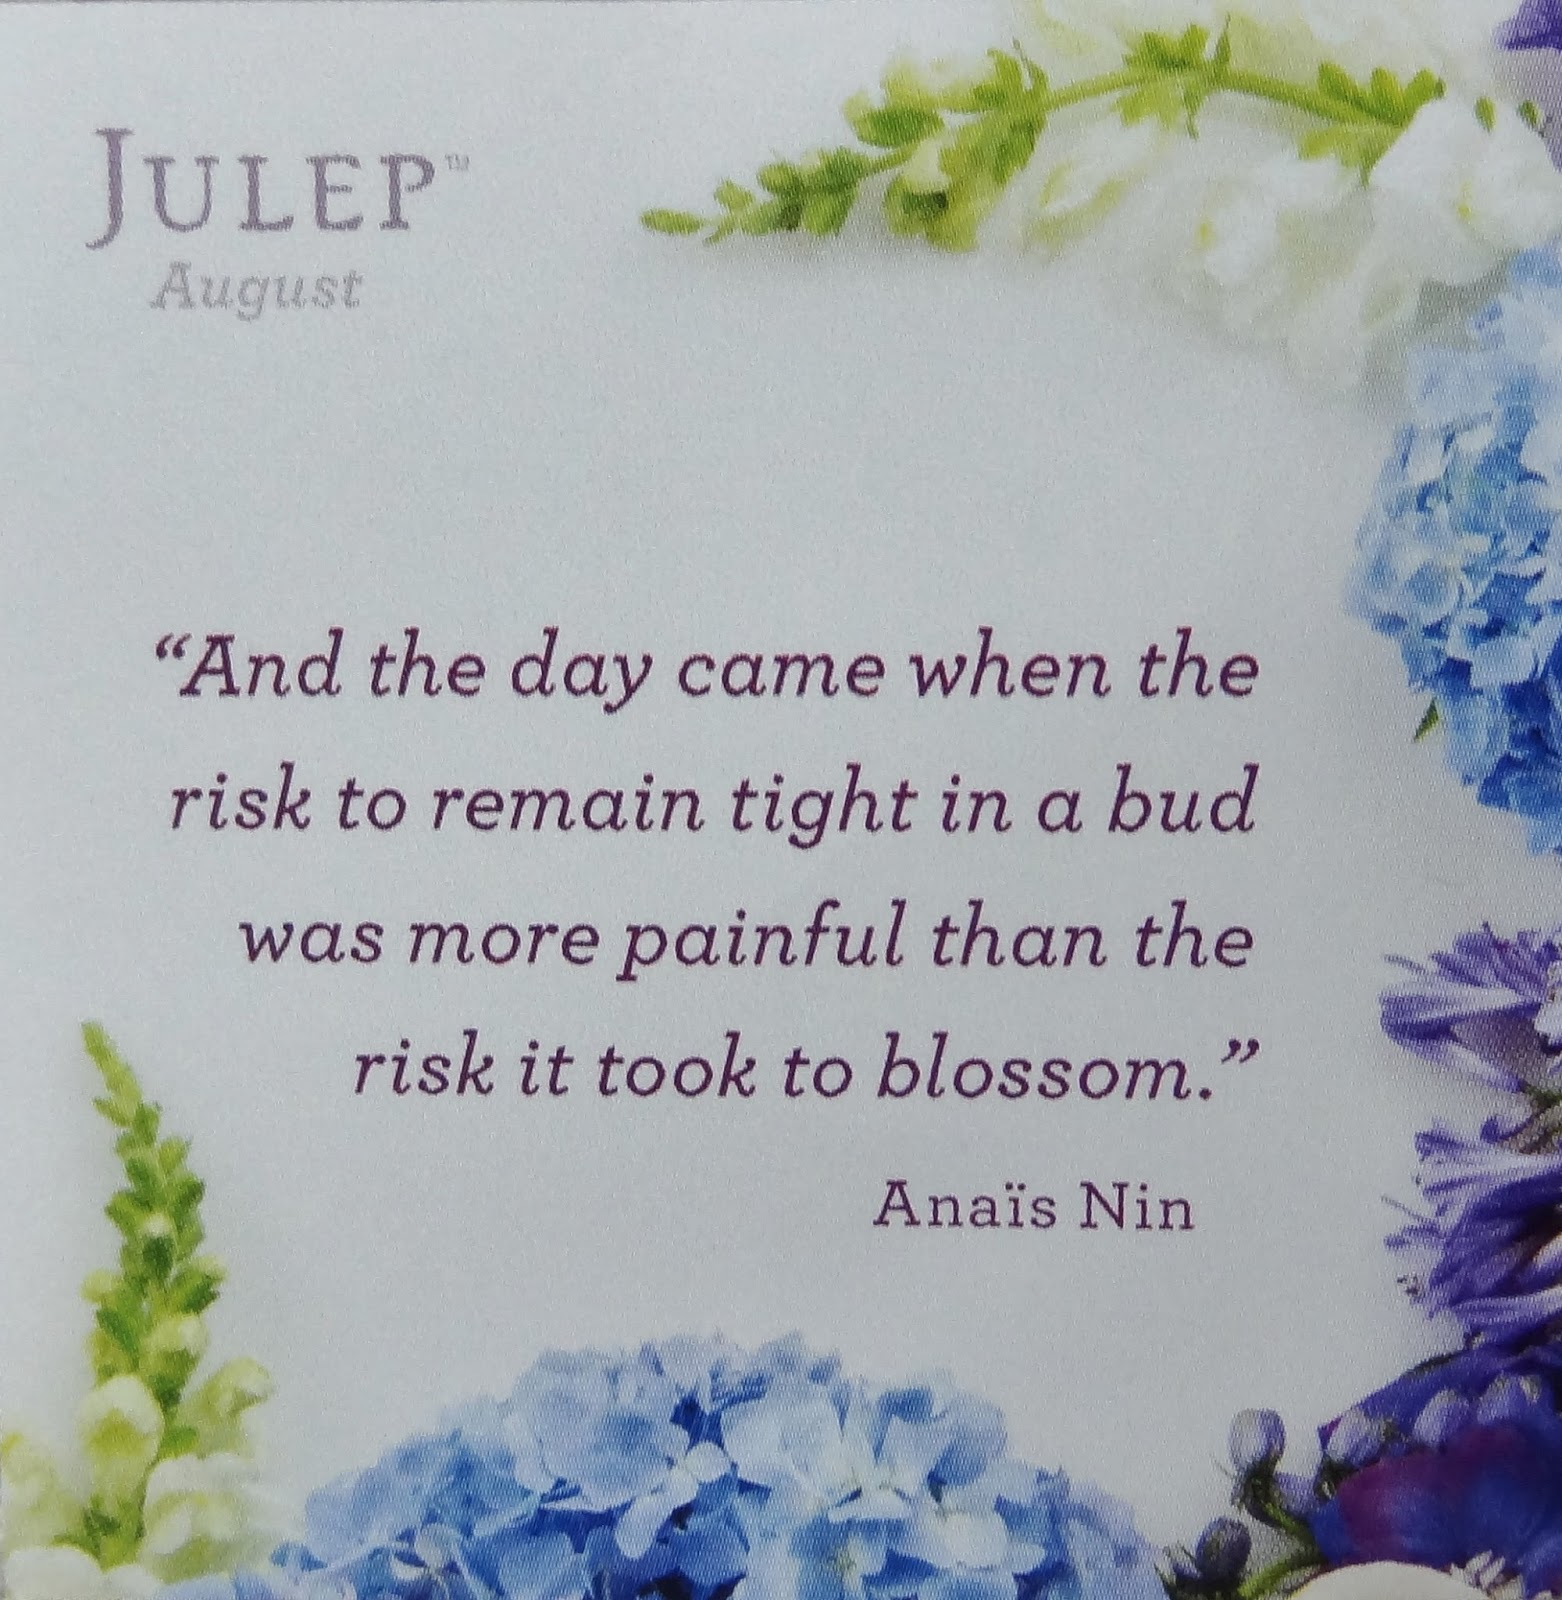 The month august